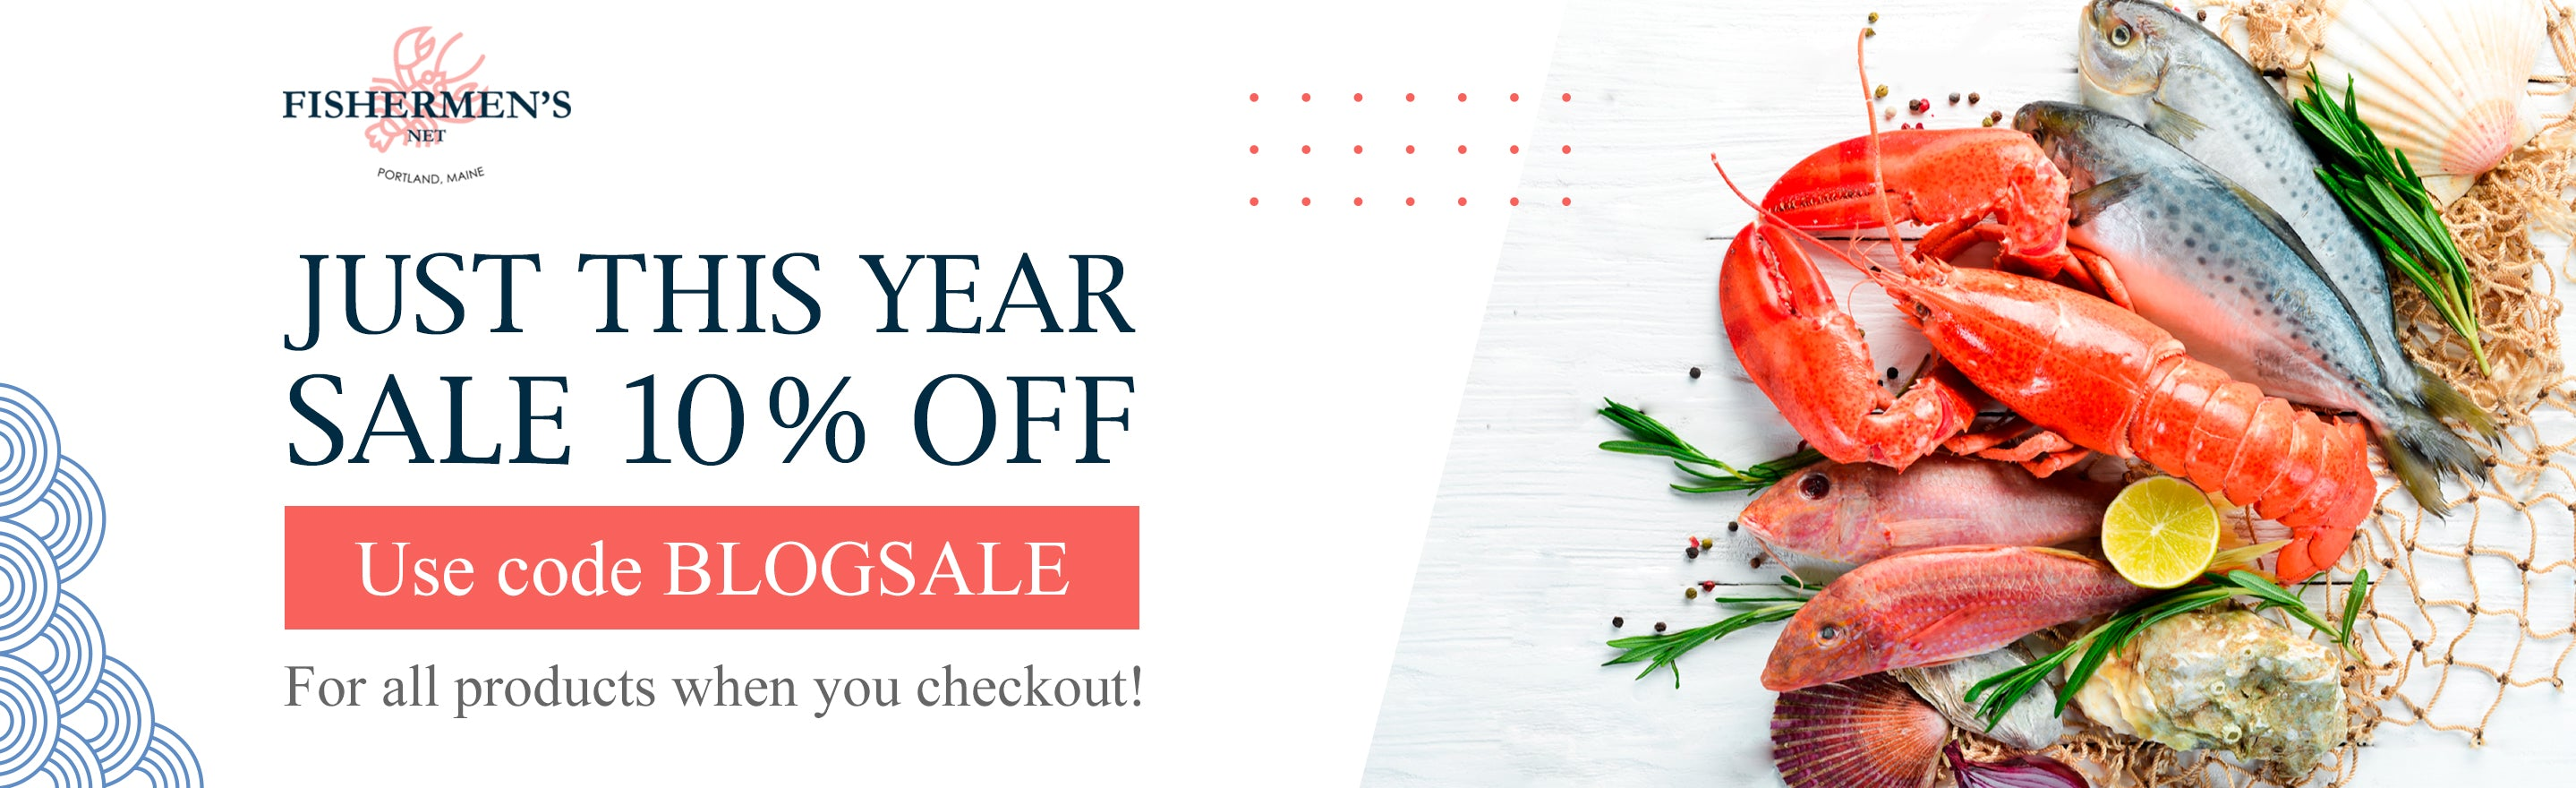 Sale 10% Off Just This Year